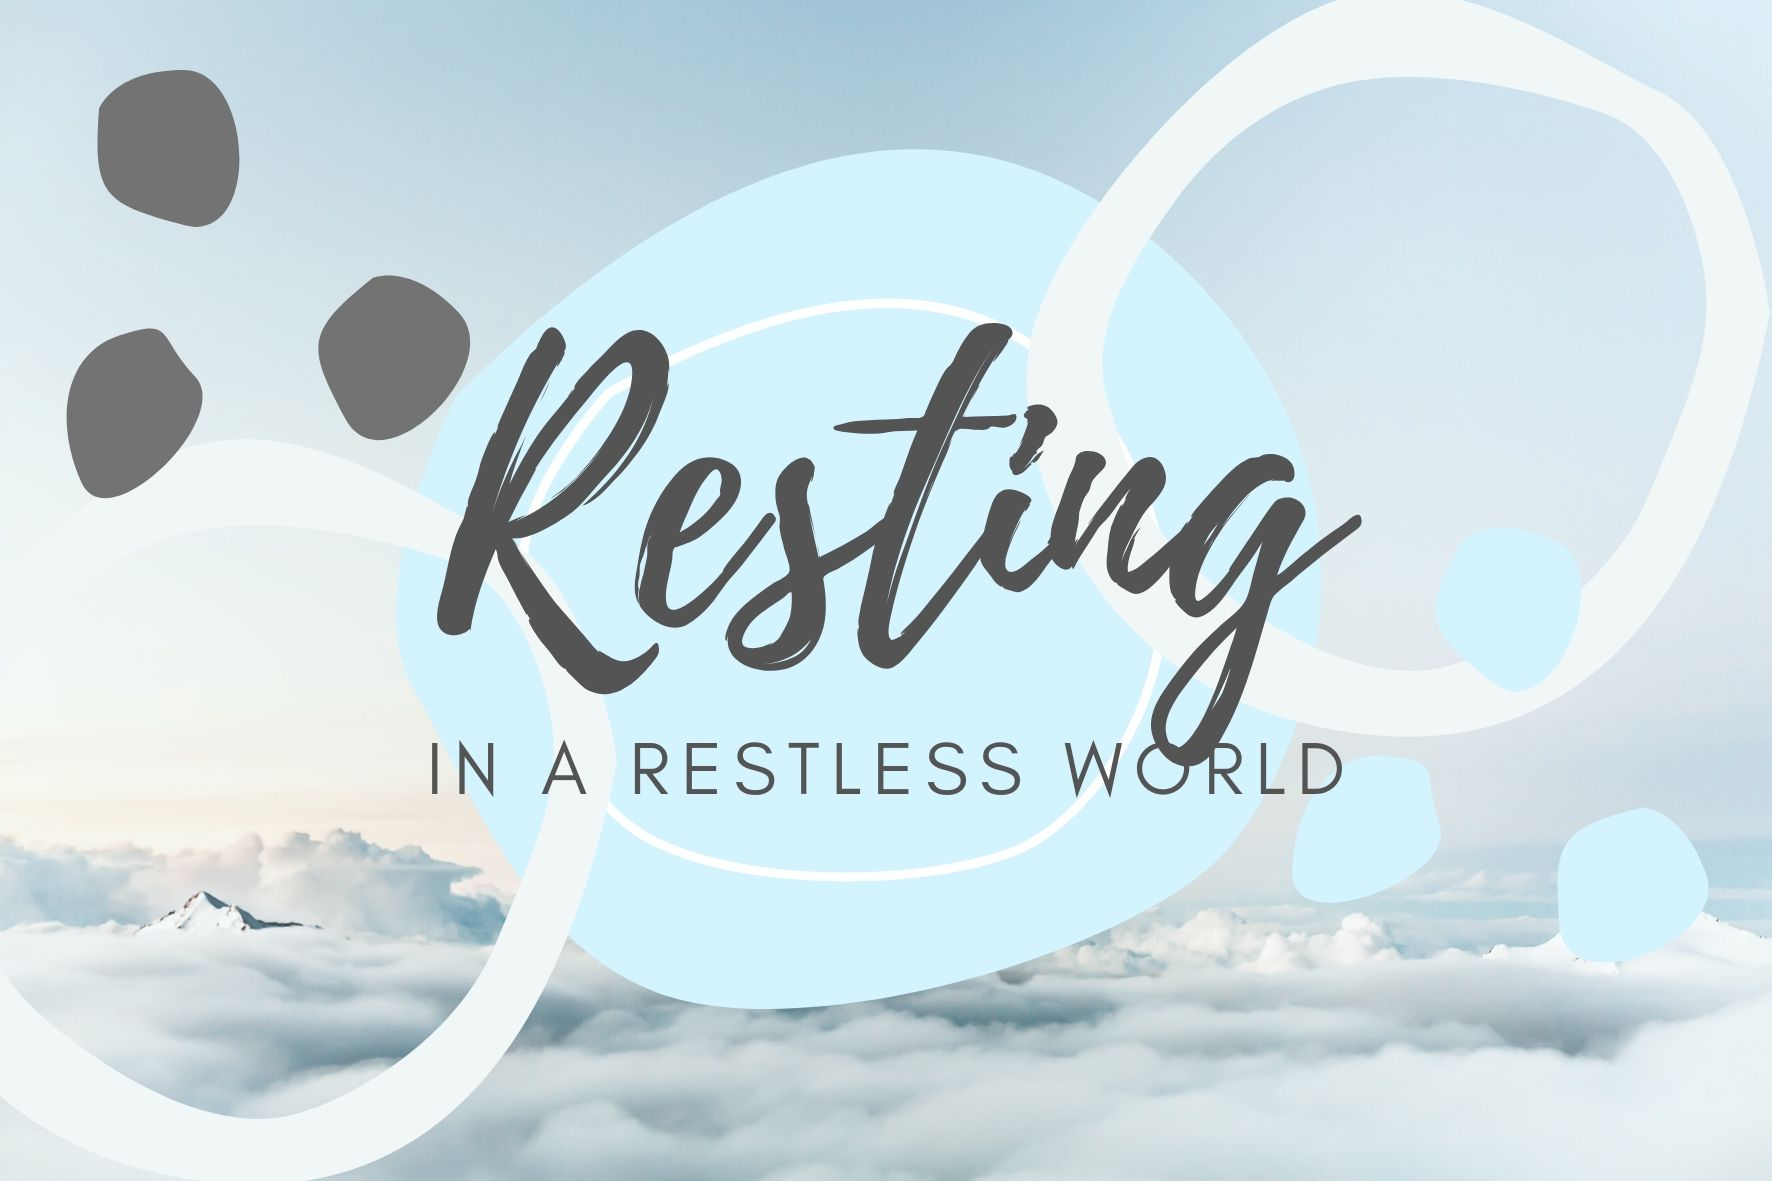 resting in a restless world